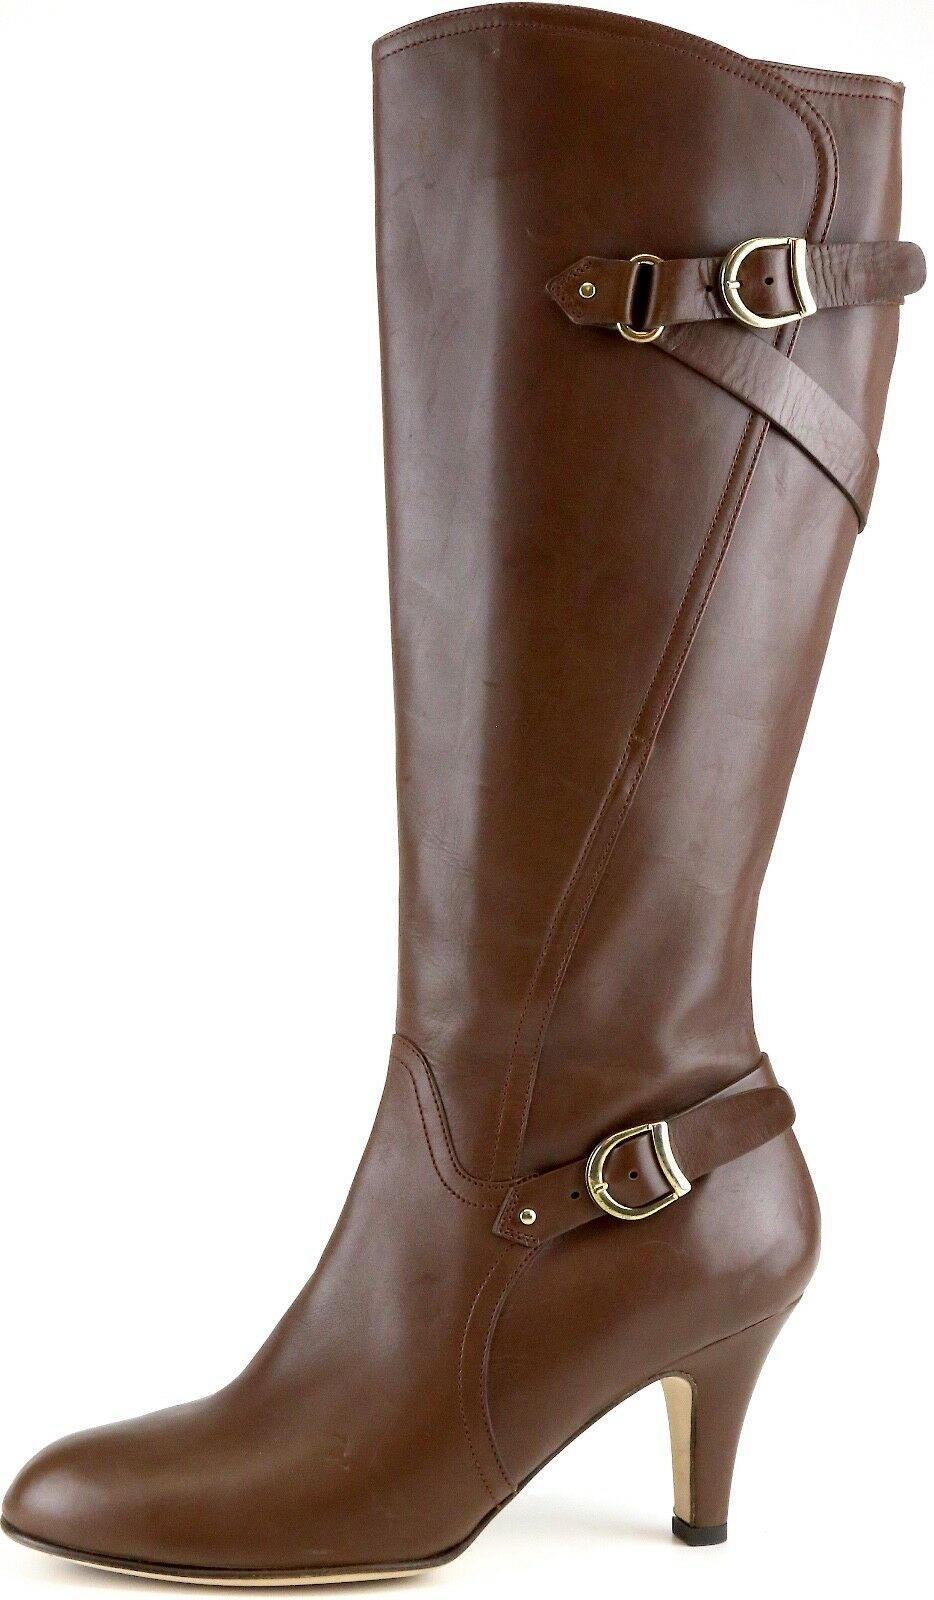 ANYI LU Woman's Brown Leather Dress Boots 9736* Size 37.5 EUR